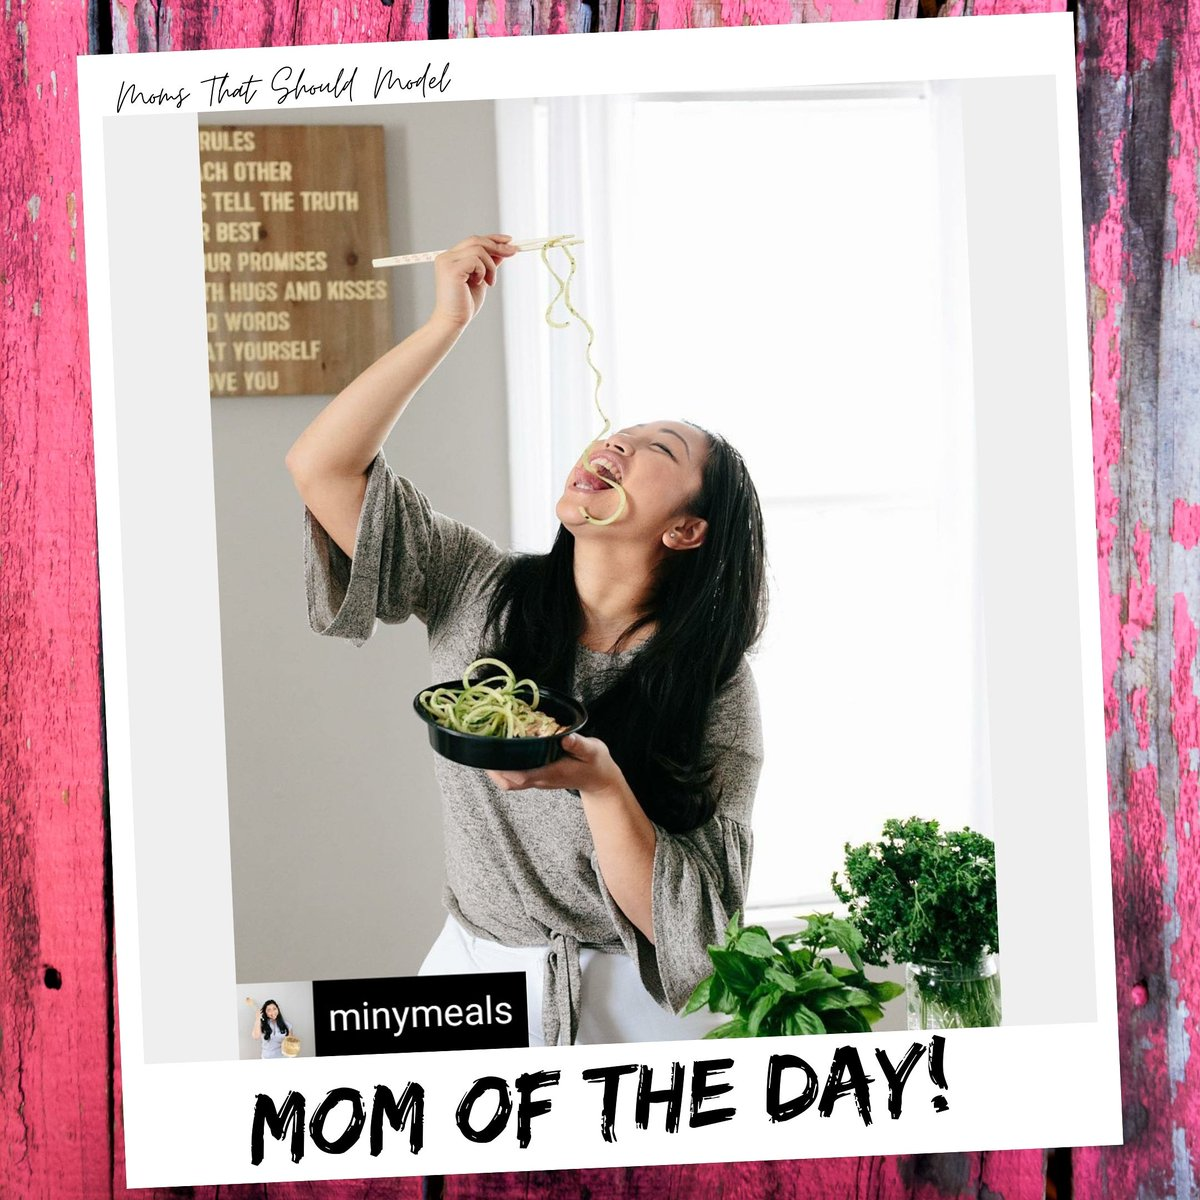 #momoftheday  @minymeals What is the best way to use your leftovers to make a great meal? #mtsm #confident #strong #beautiful  Keep being strong, confident and beautiful! Show this mom some love 💖  Reposted from @minymeals https://t.co/mZAlH624Zv